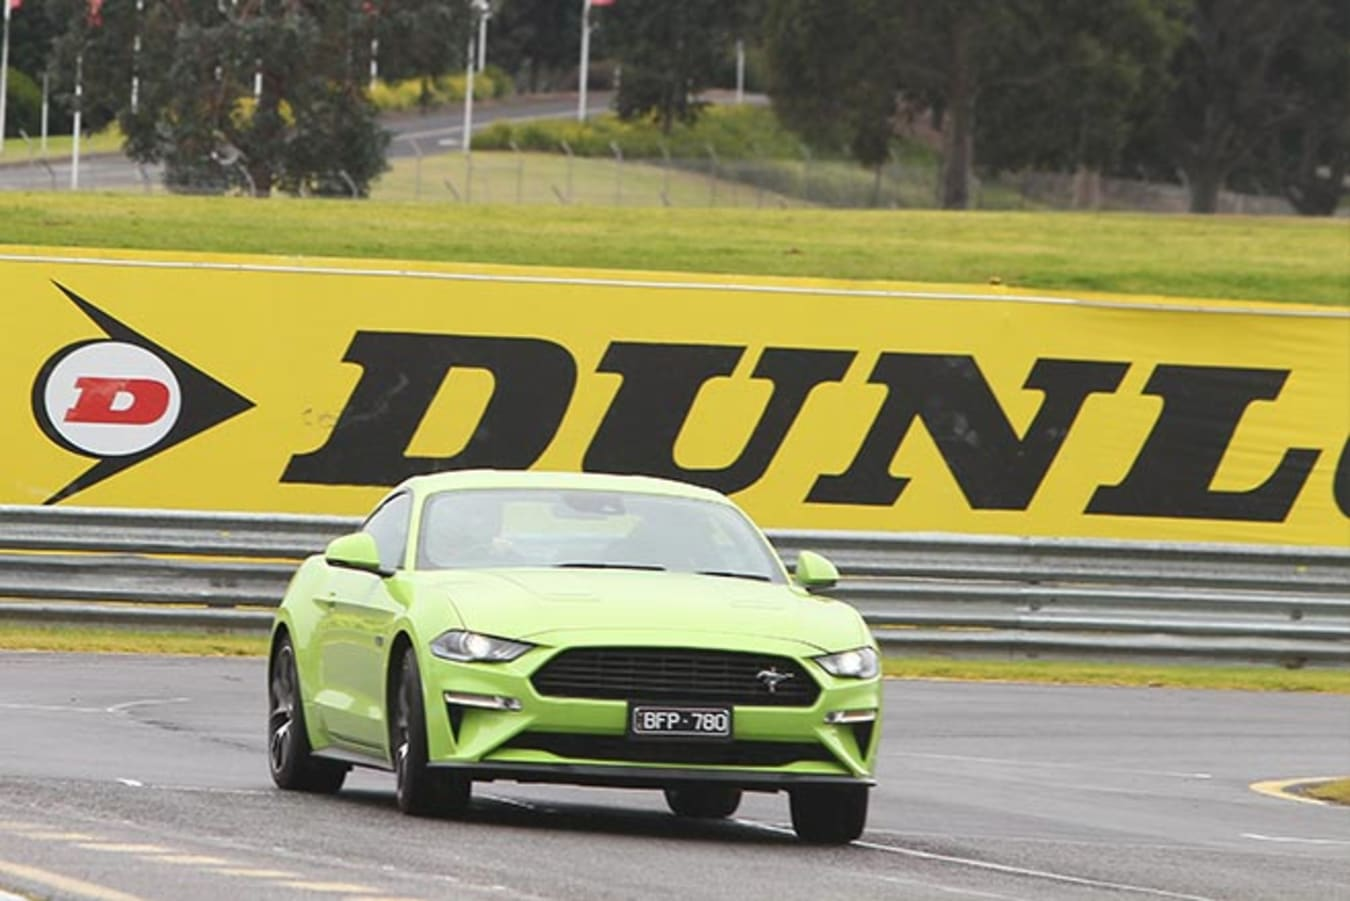 Ford Mustang powerslide on a racetrack